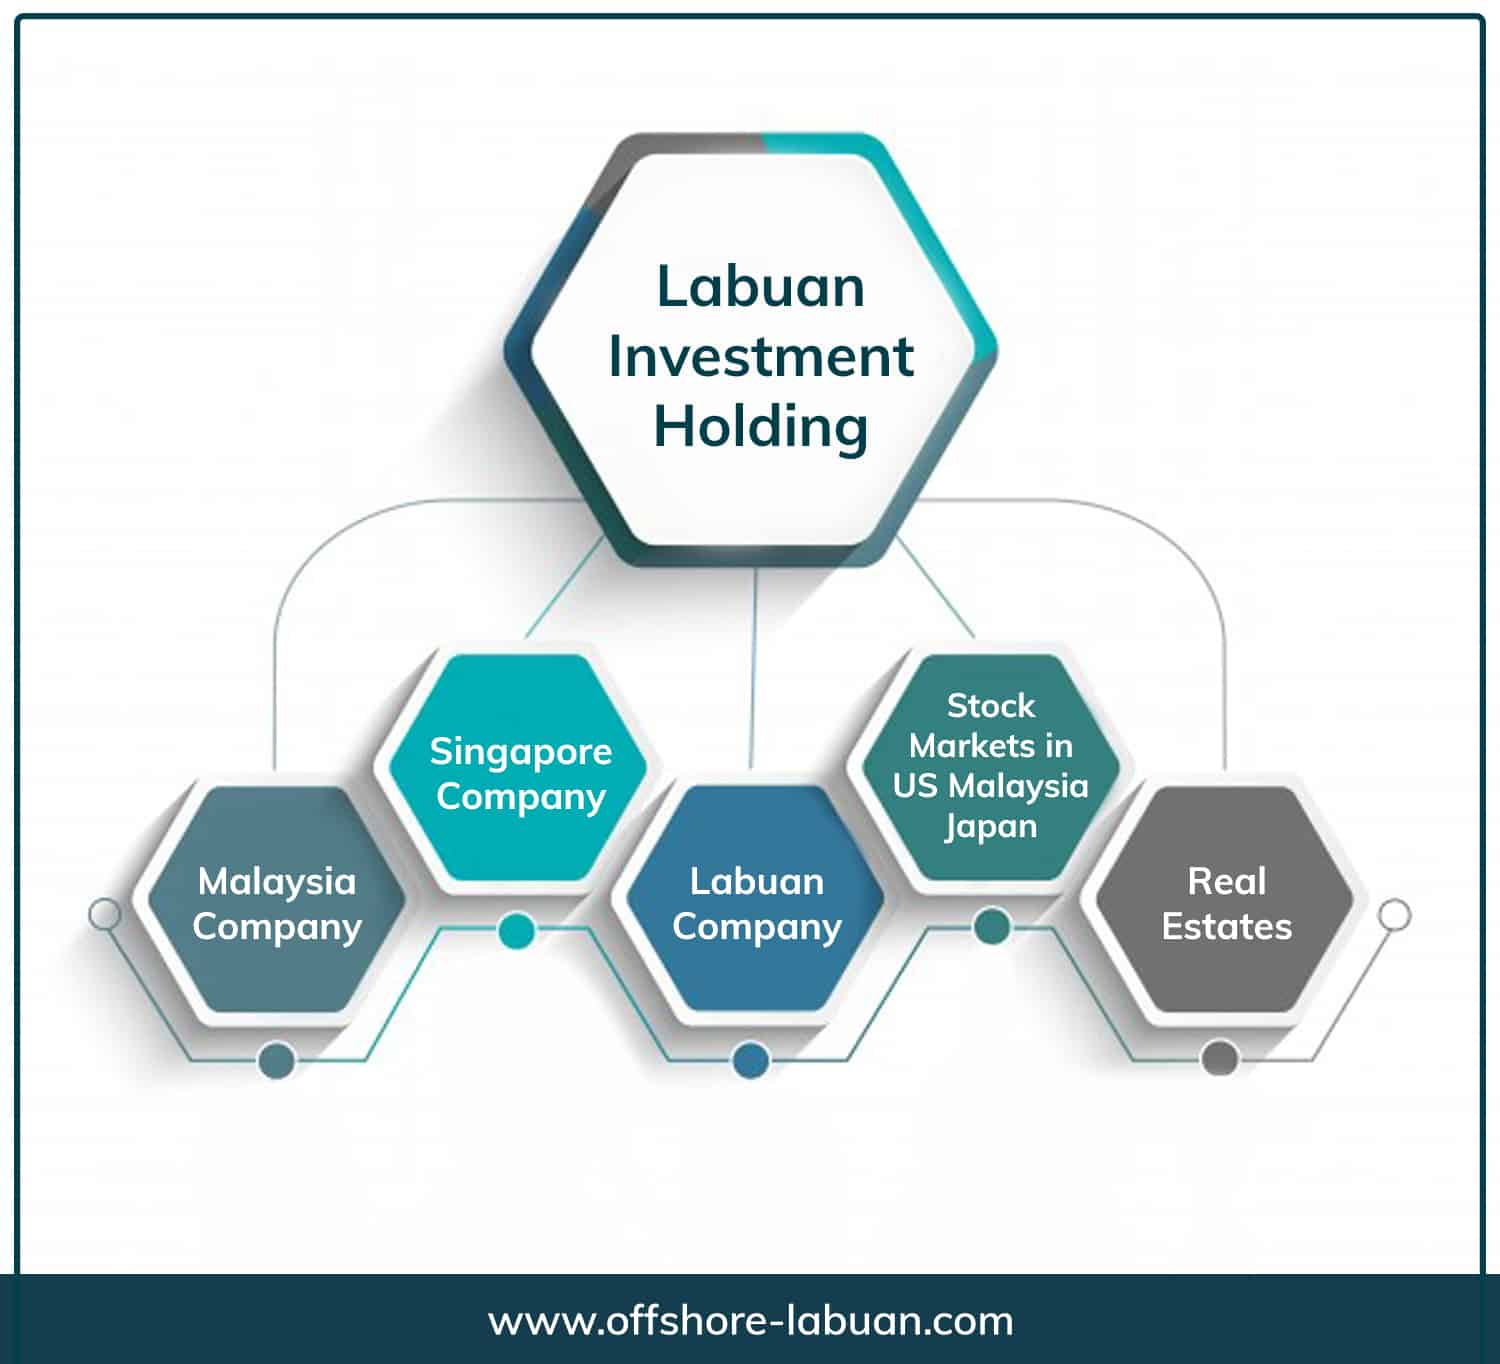 Labuan-Investment-Holding-1